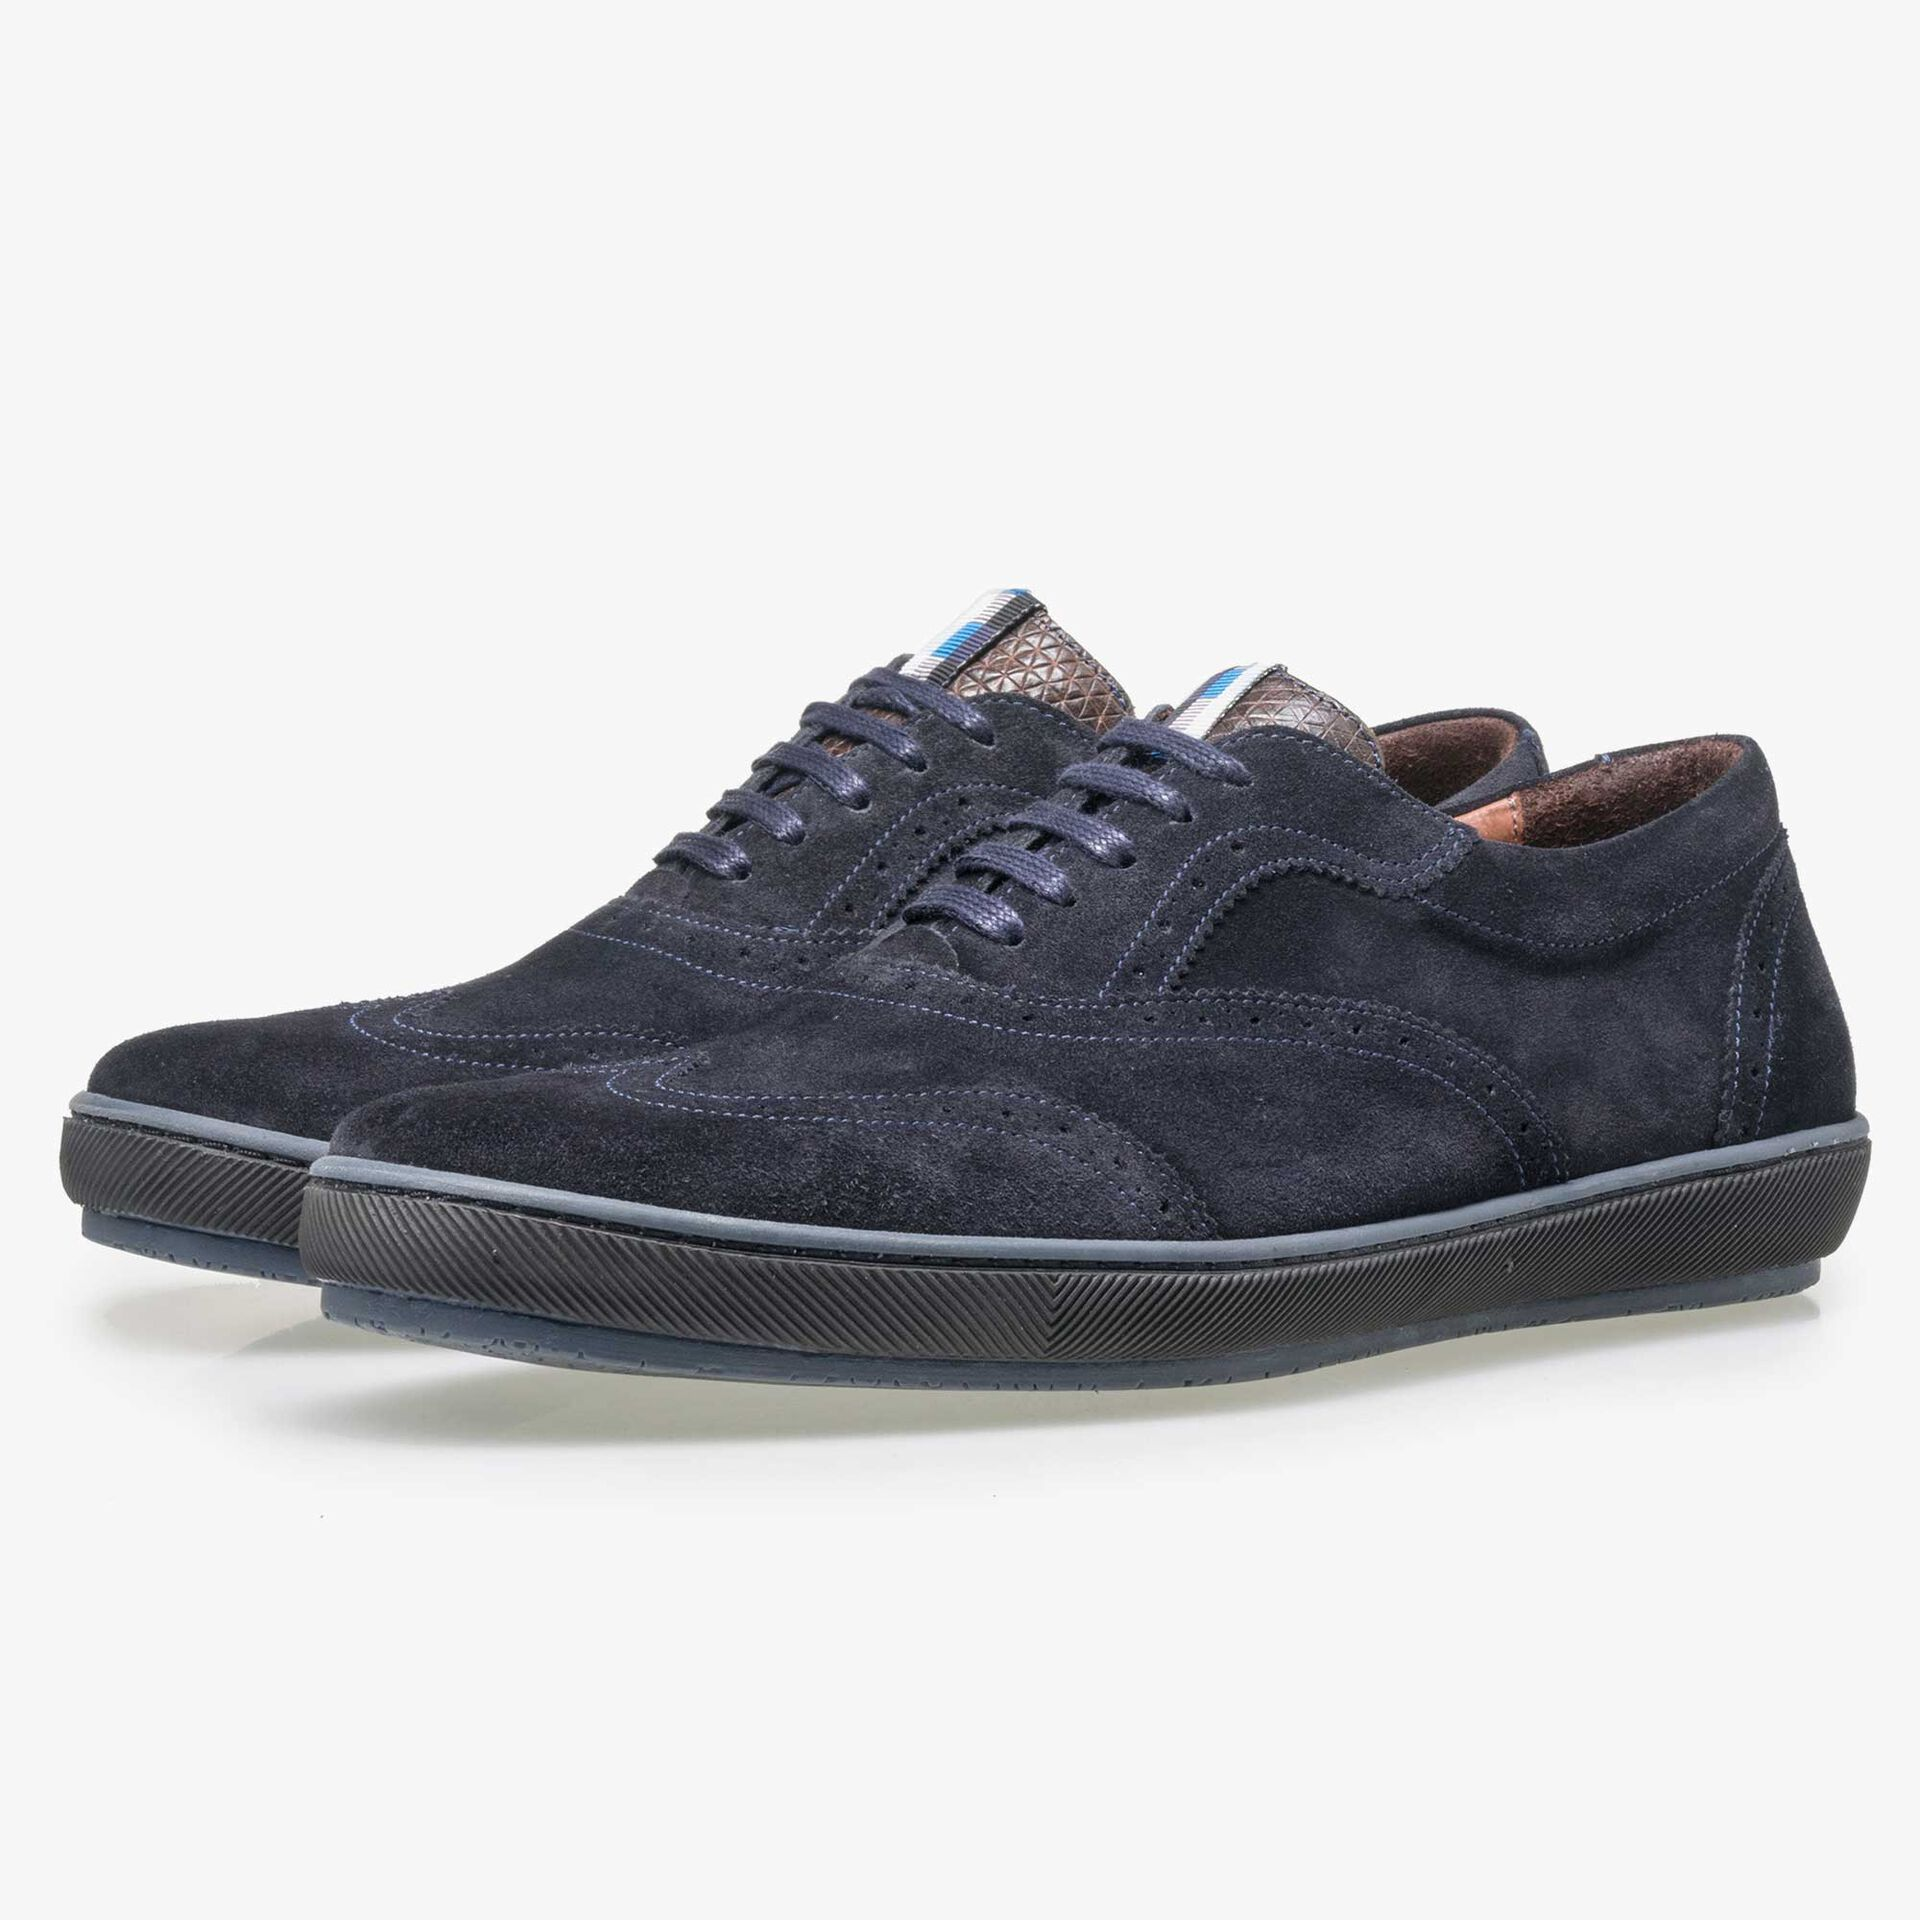 Floris van Bommel men's dark blue suede brogue lace shoe